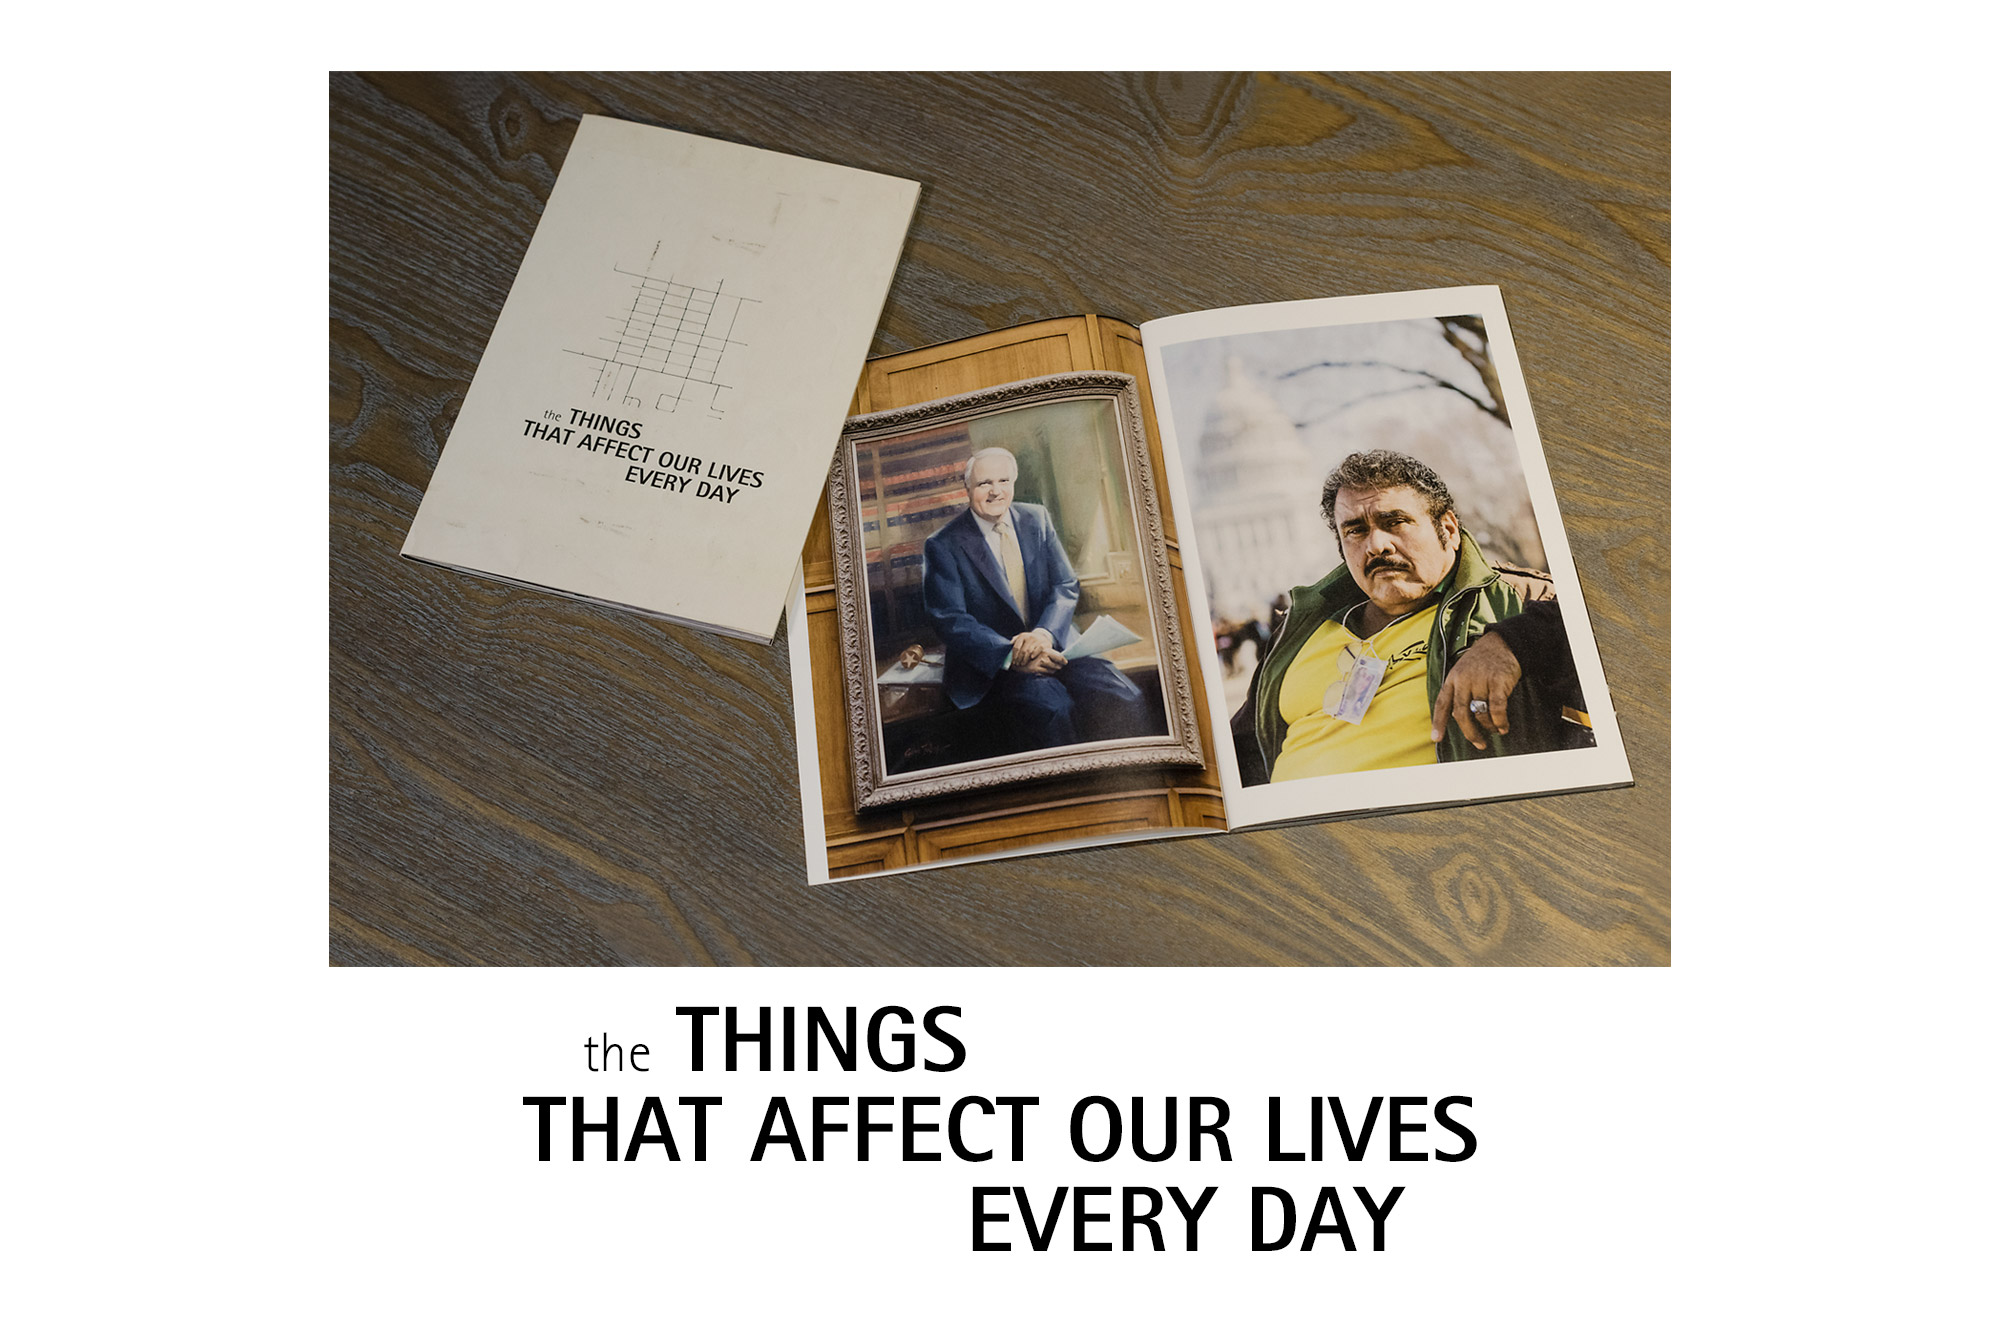 The Things That Affect Our Lives Every Day